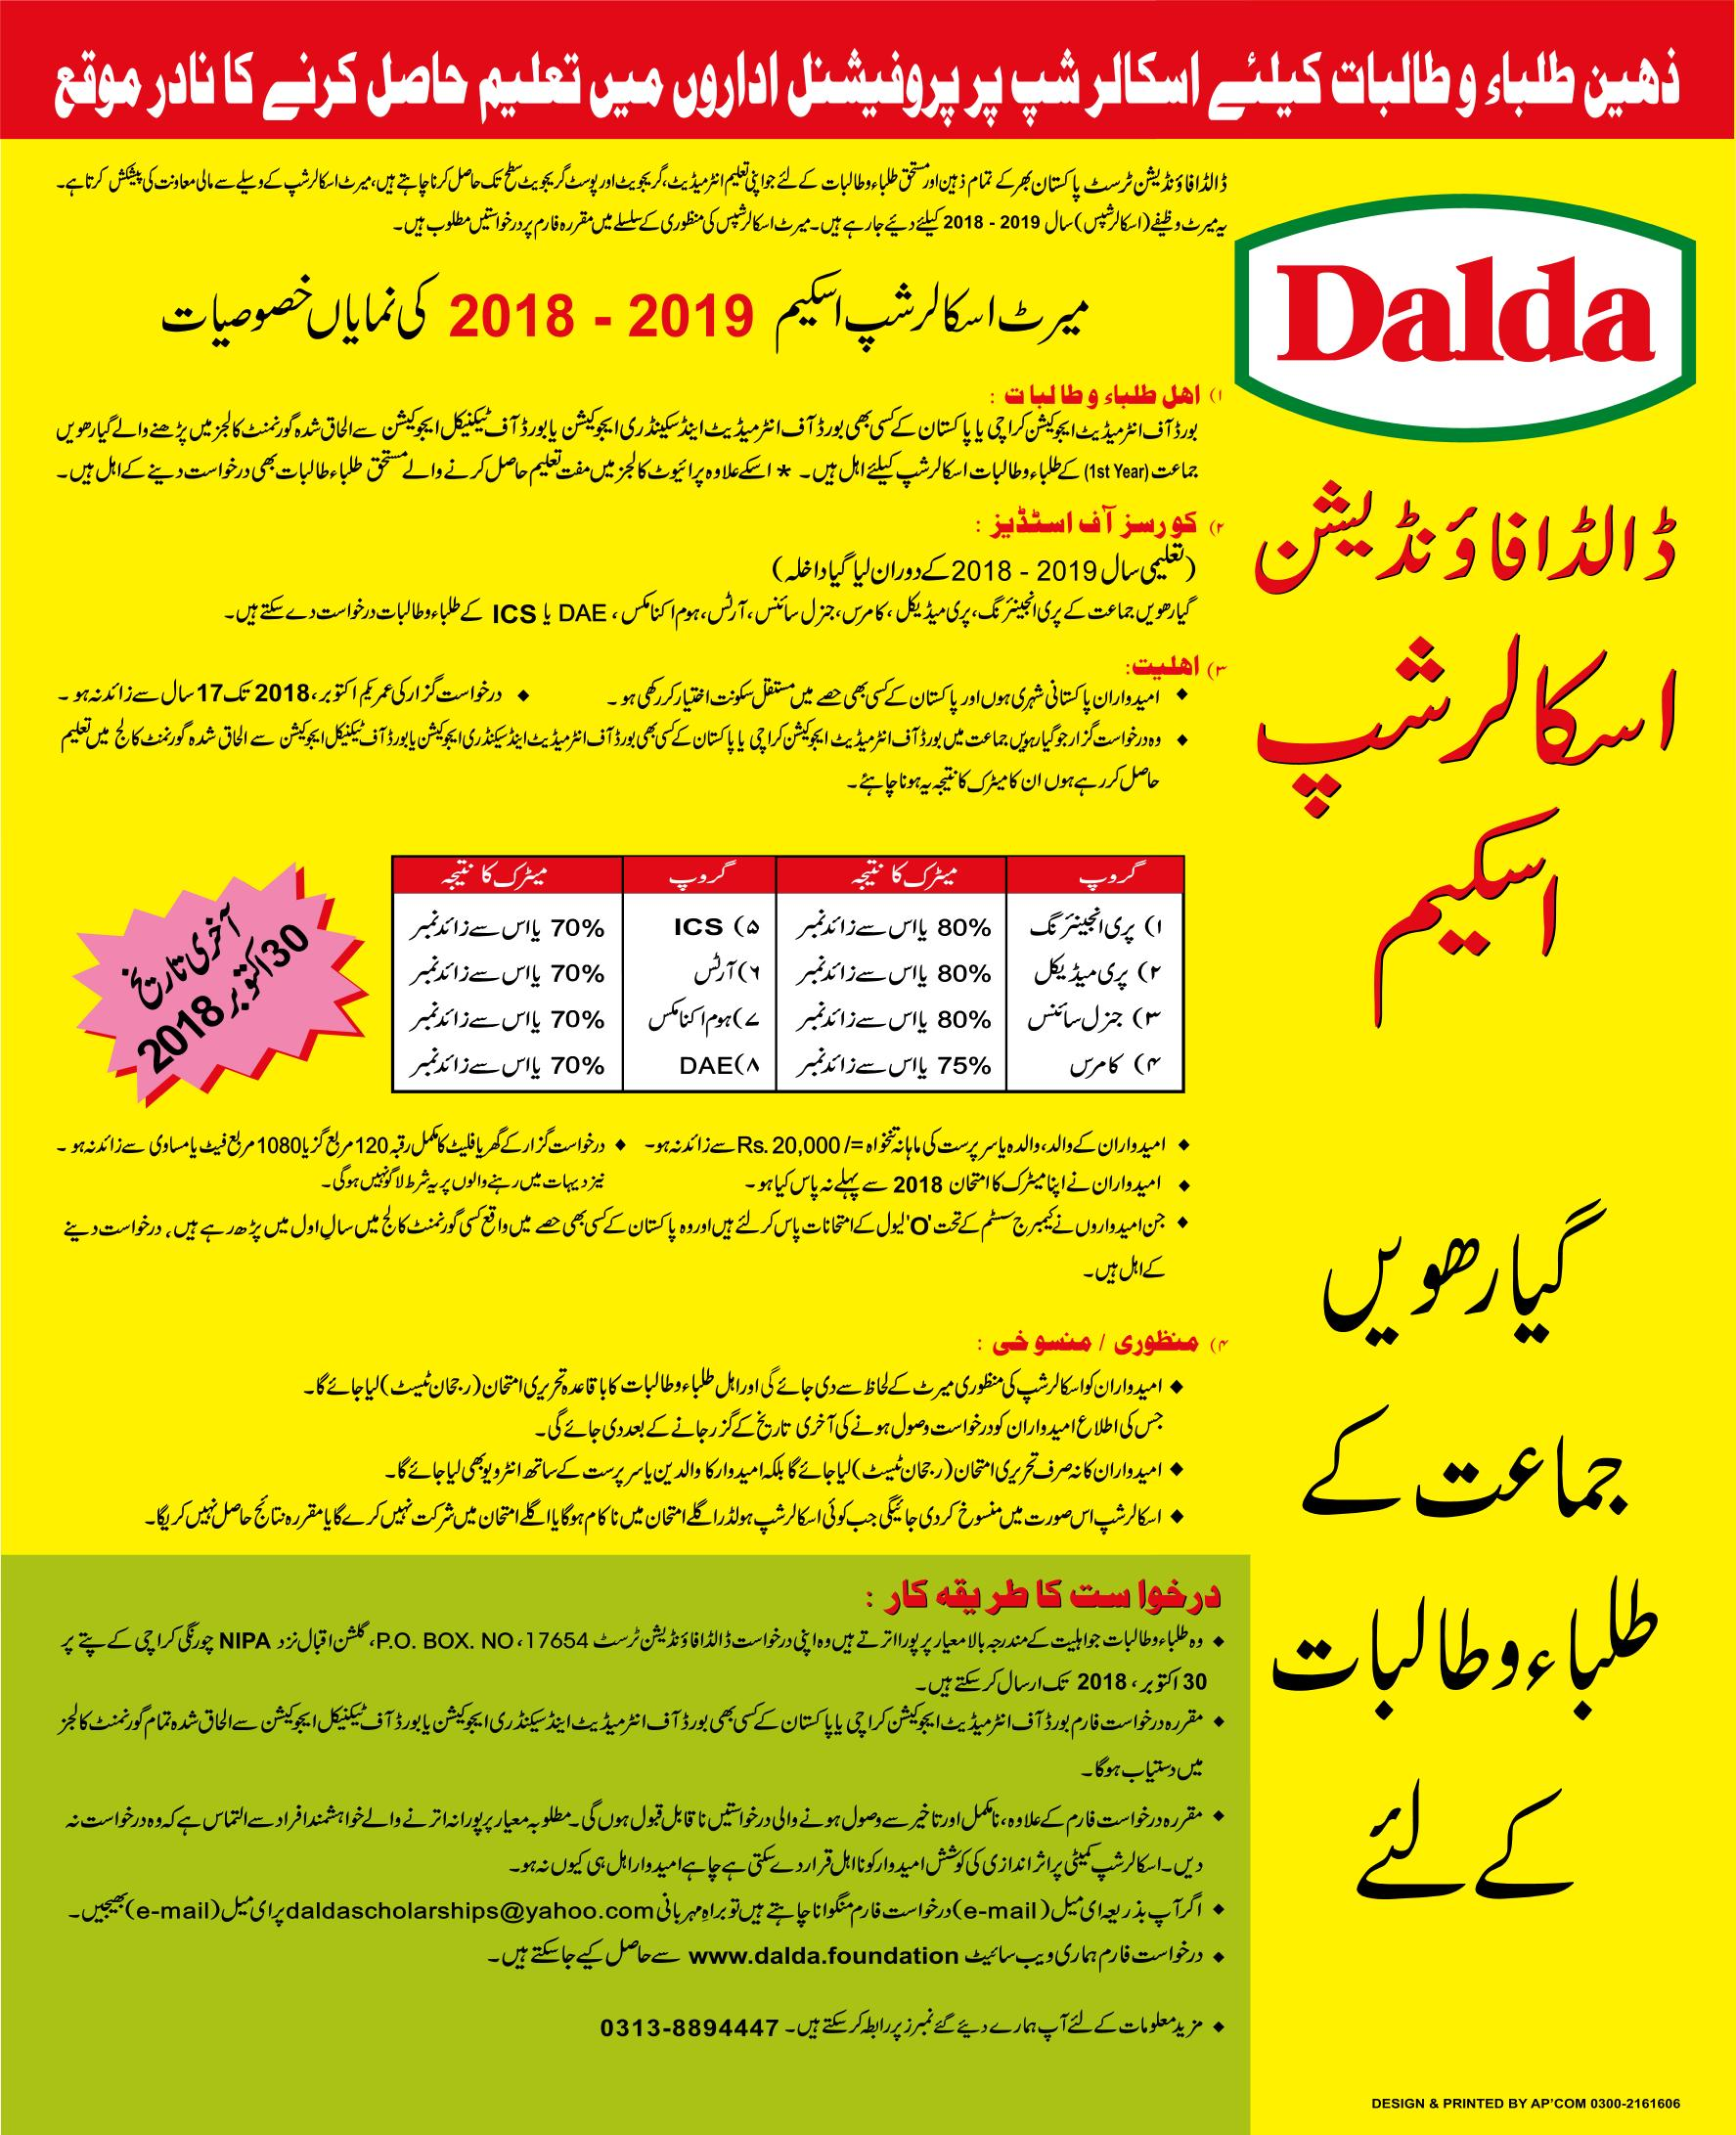 Scholarship - Dalda Foundation